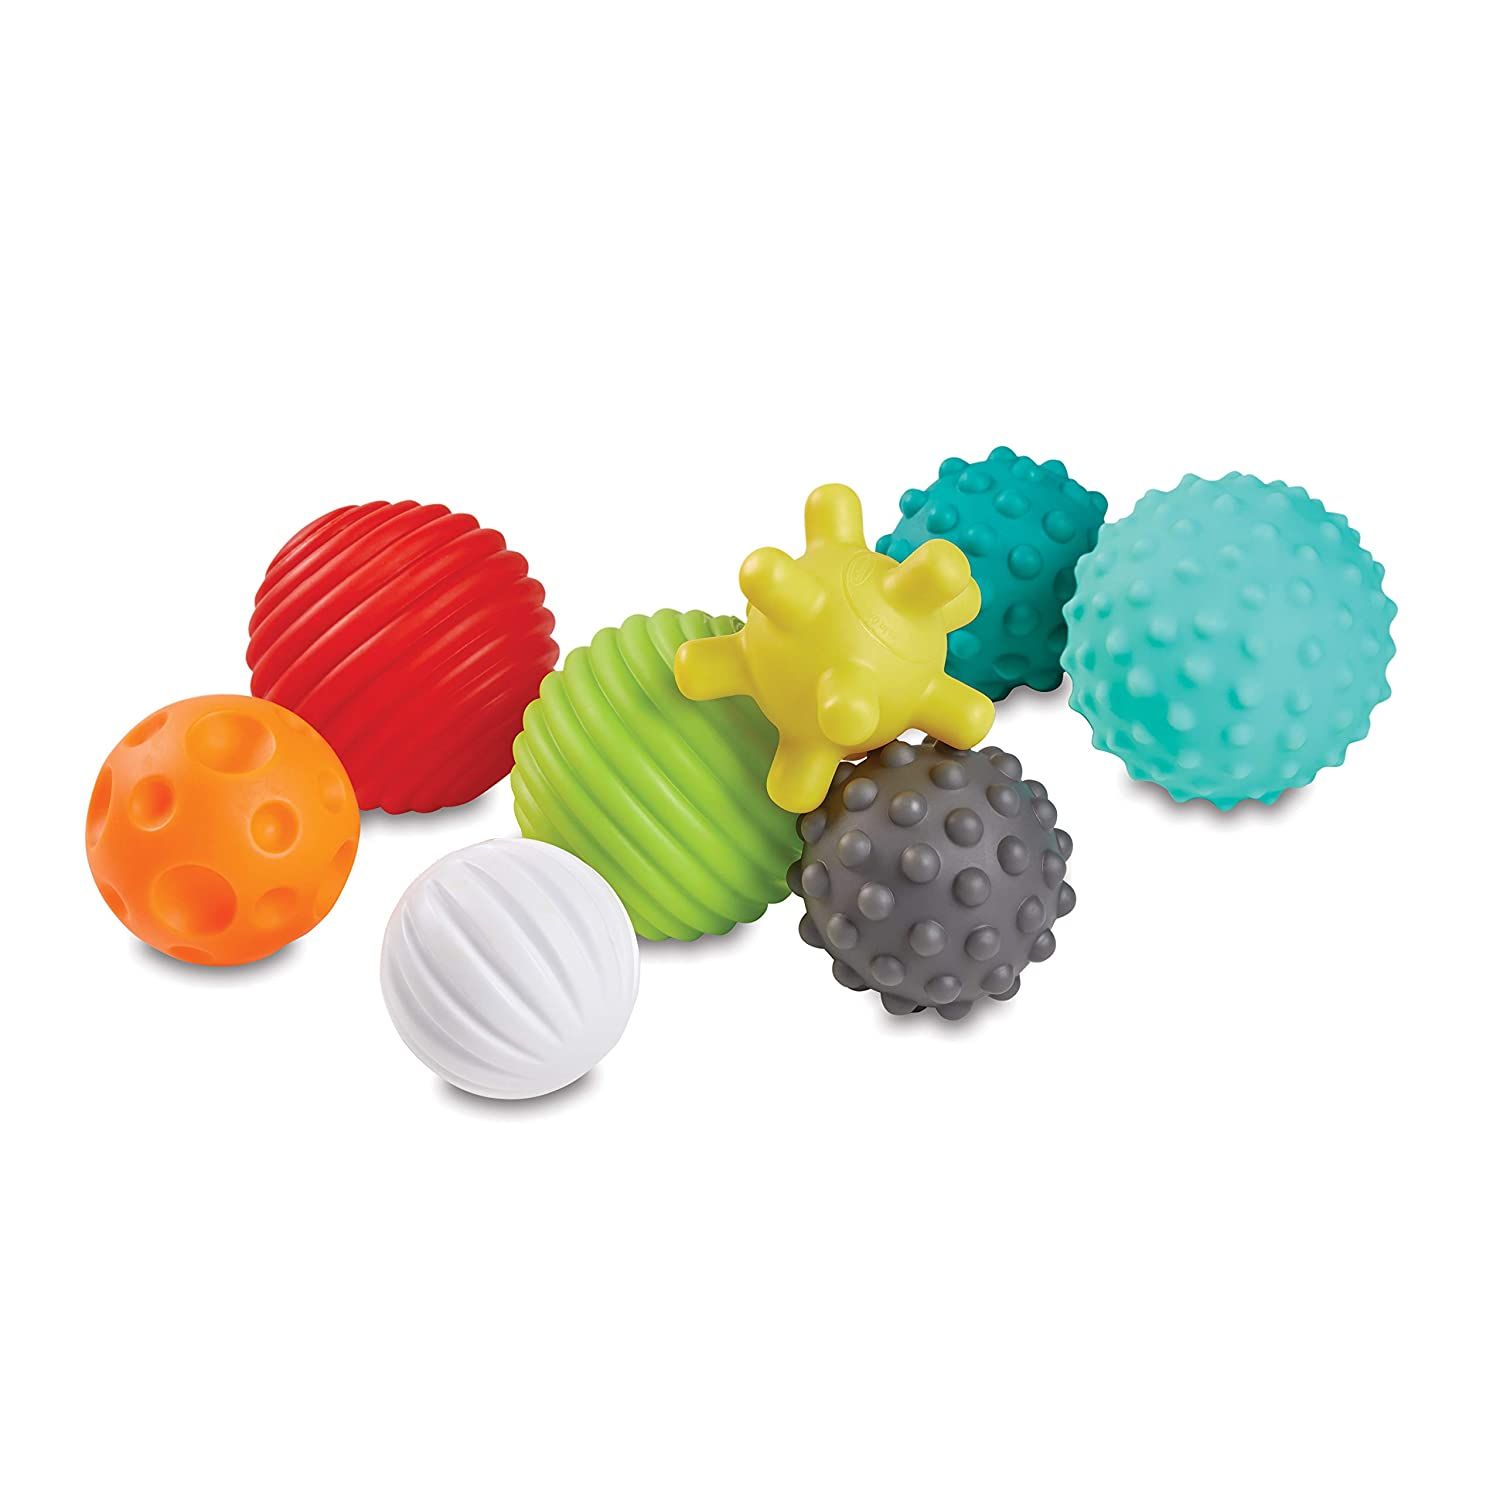 Blocks Infantino Balls /& Buddies Activity Toy Set